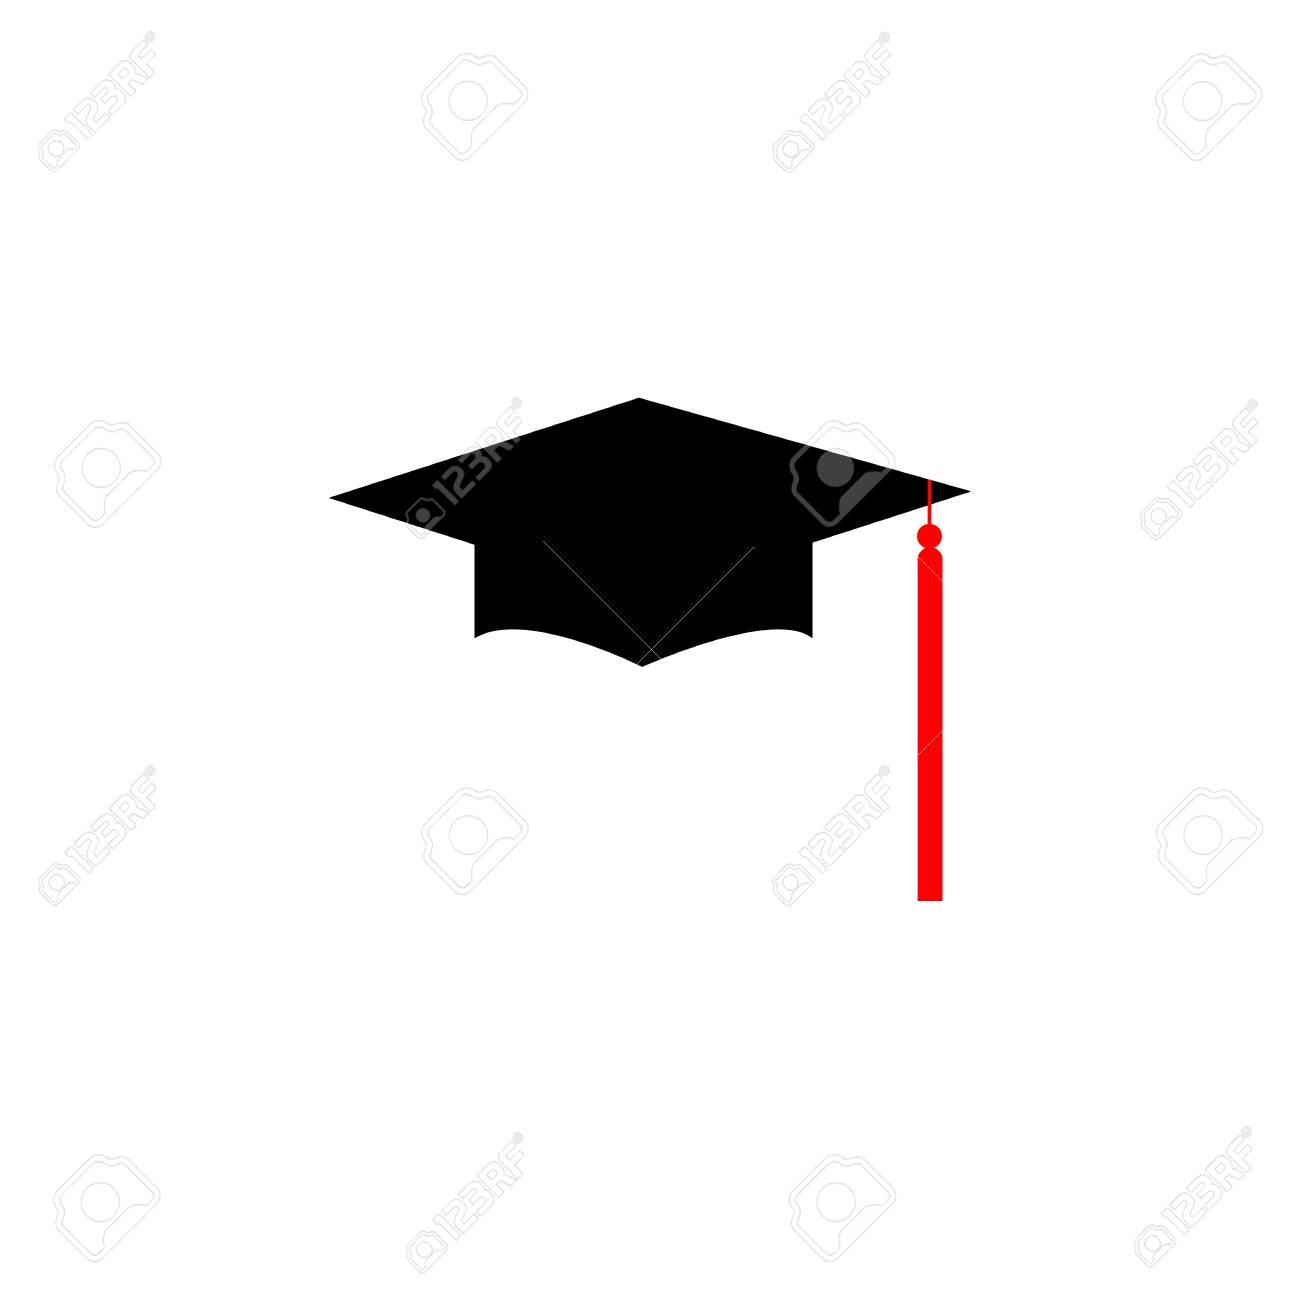 image relating to Graduation Cap Template Free Printable named Epub Descargar Commencement Cap Emblem Template Style and design Variables